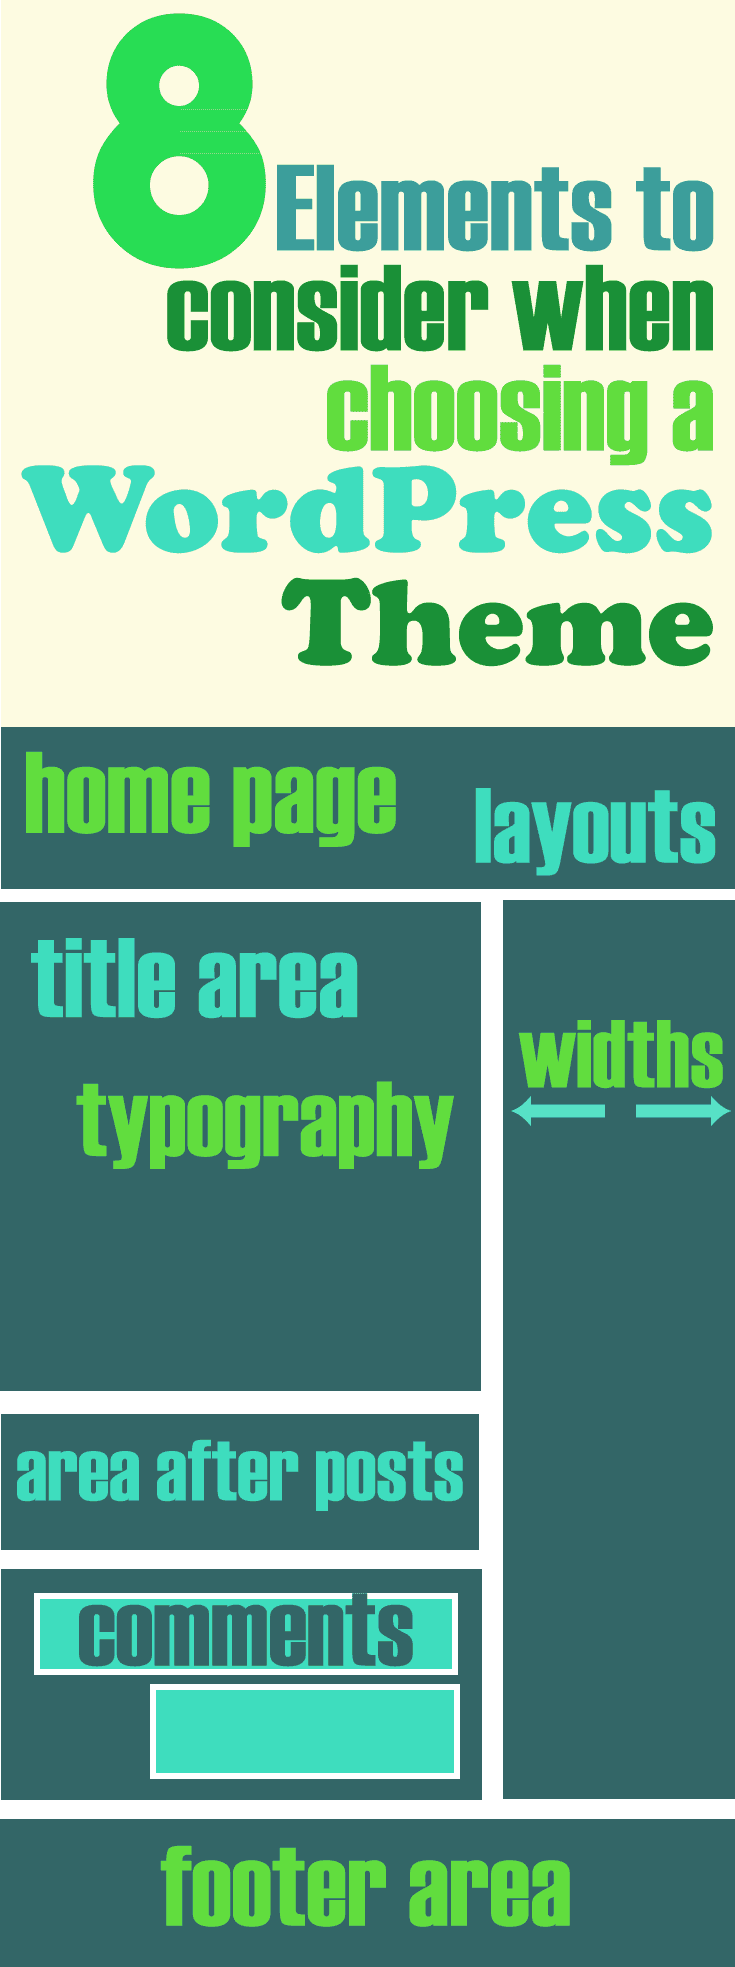 How to choose a wordpress theme for your blog.